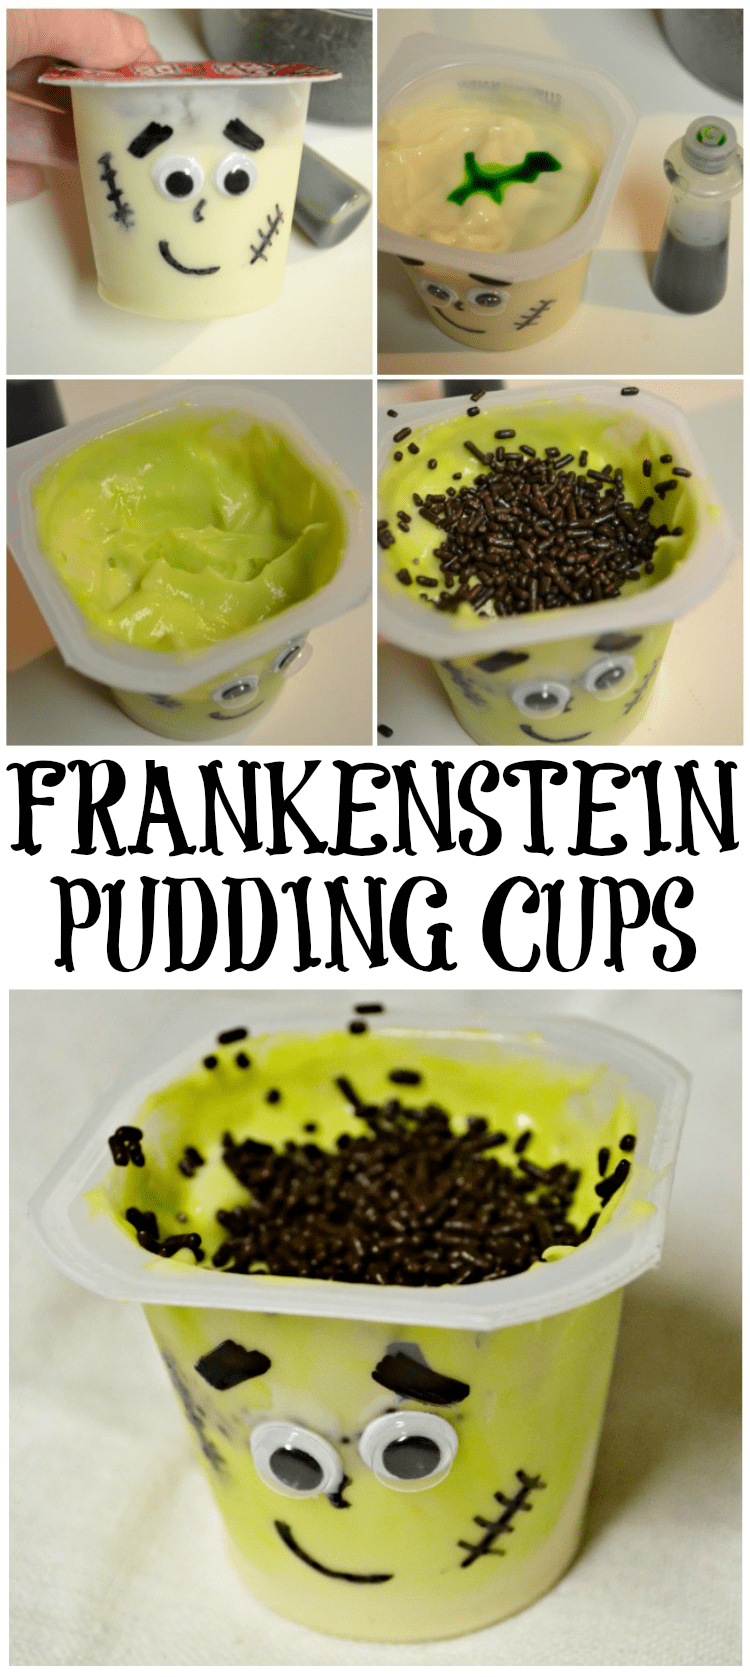 Turn a simple cup of pudding into the perfect class Halloween party treat with these super cute Frankenstein pudding cups.